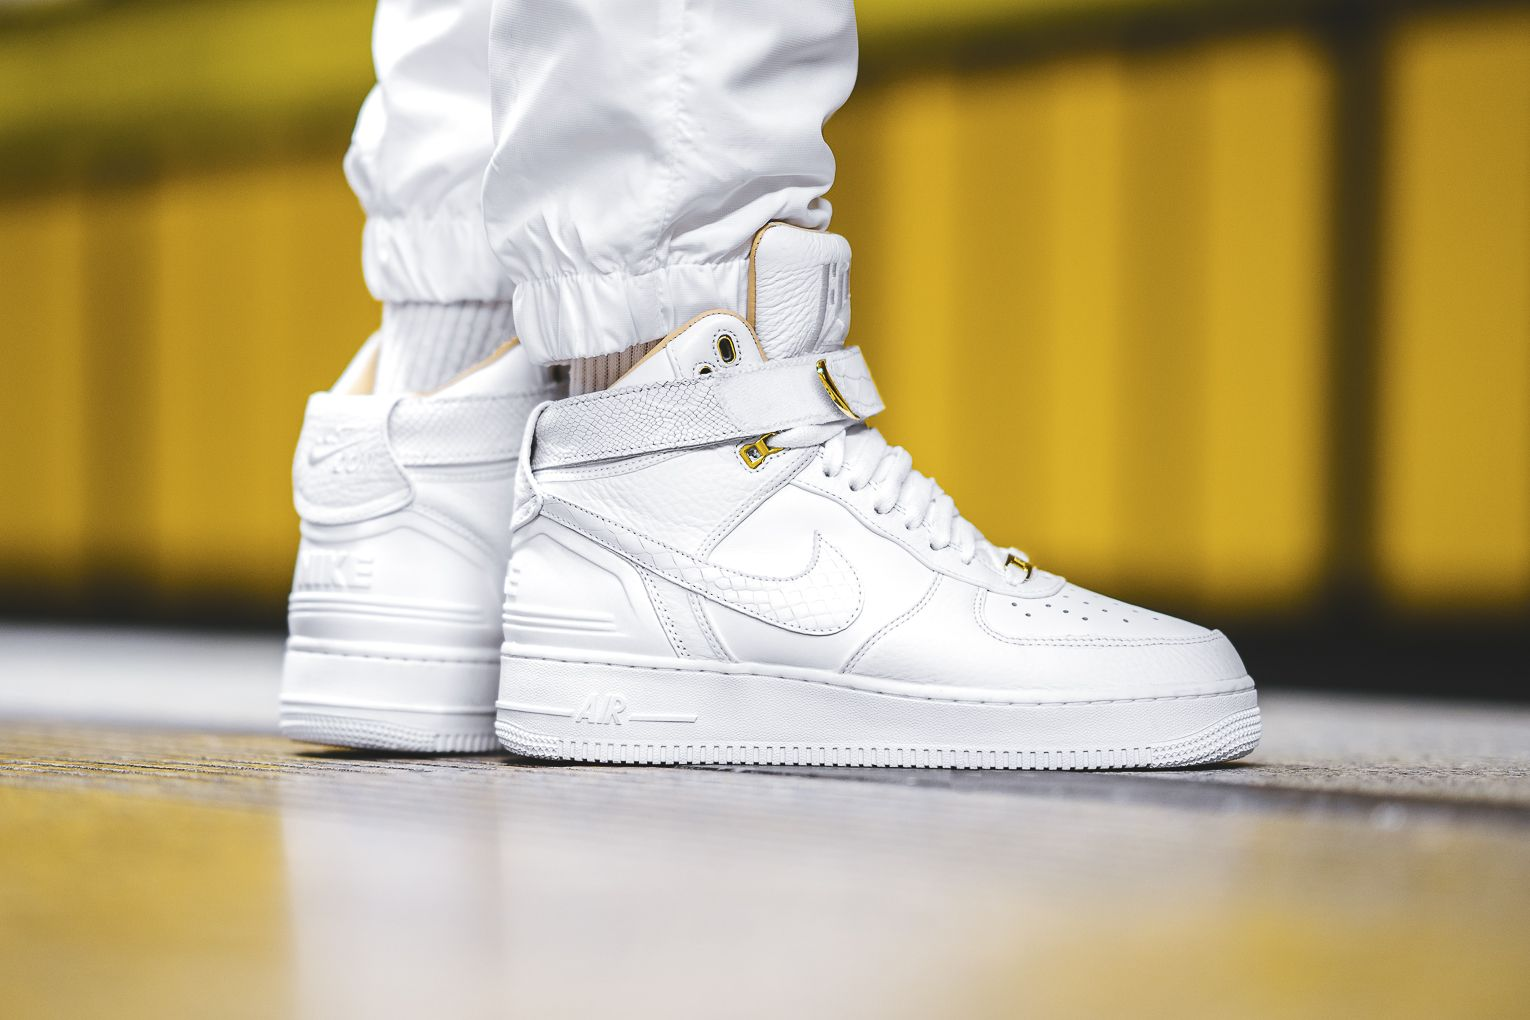 Aspirar Relámpago regular  An On-Feet Look At The Nike Air Force 1 High Just Don • KicksOnFire.com | Nike  air, Nike air force, Nike